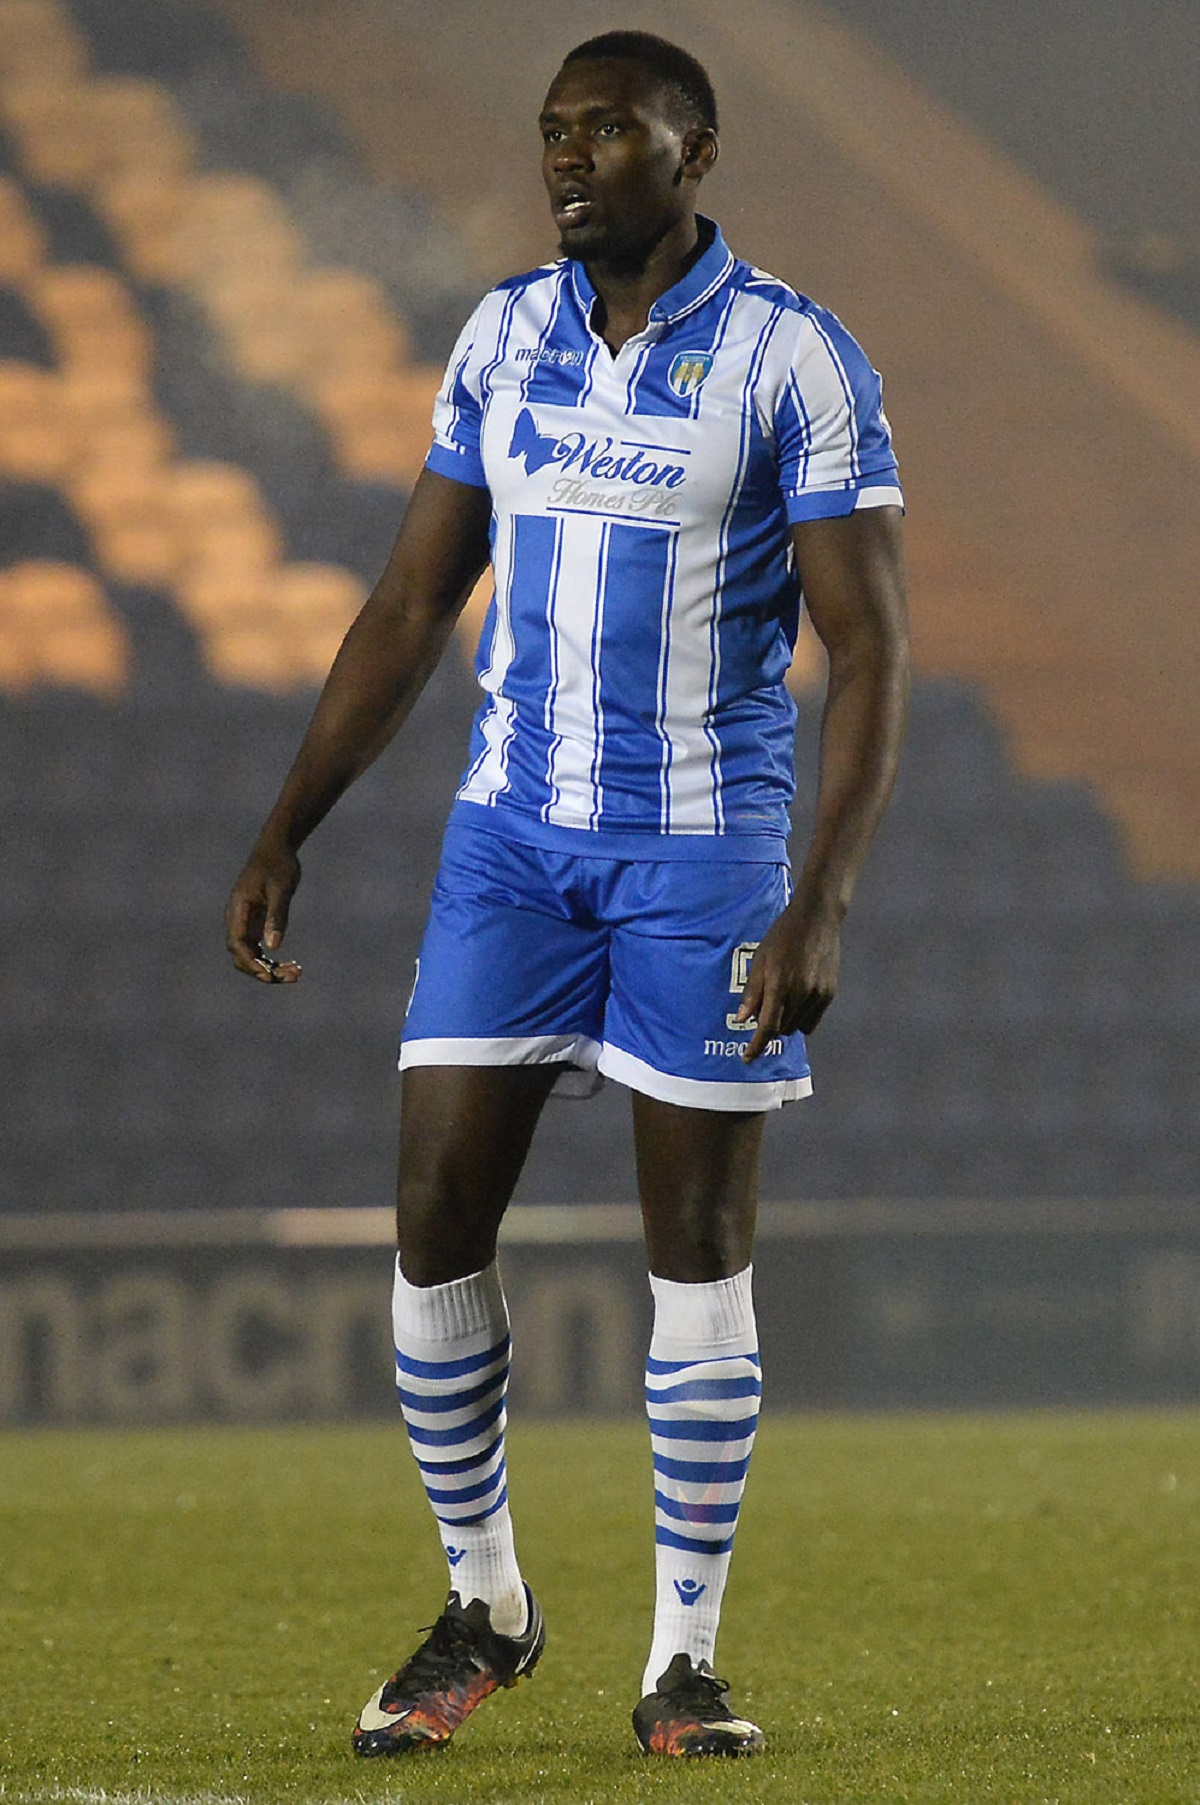 Pastures new - Jermaine Grandison has left Colchester United. Picture: RICHARD BLAXALL